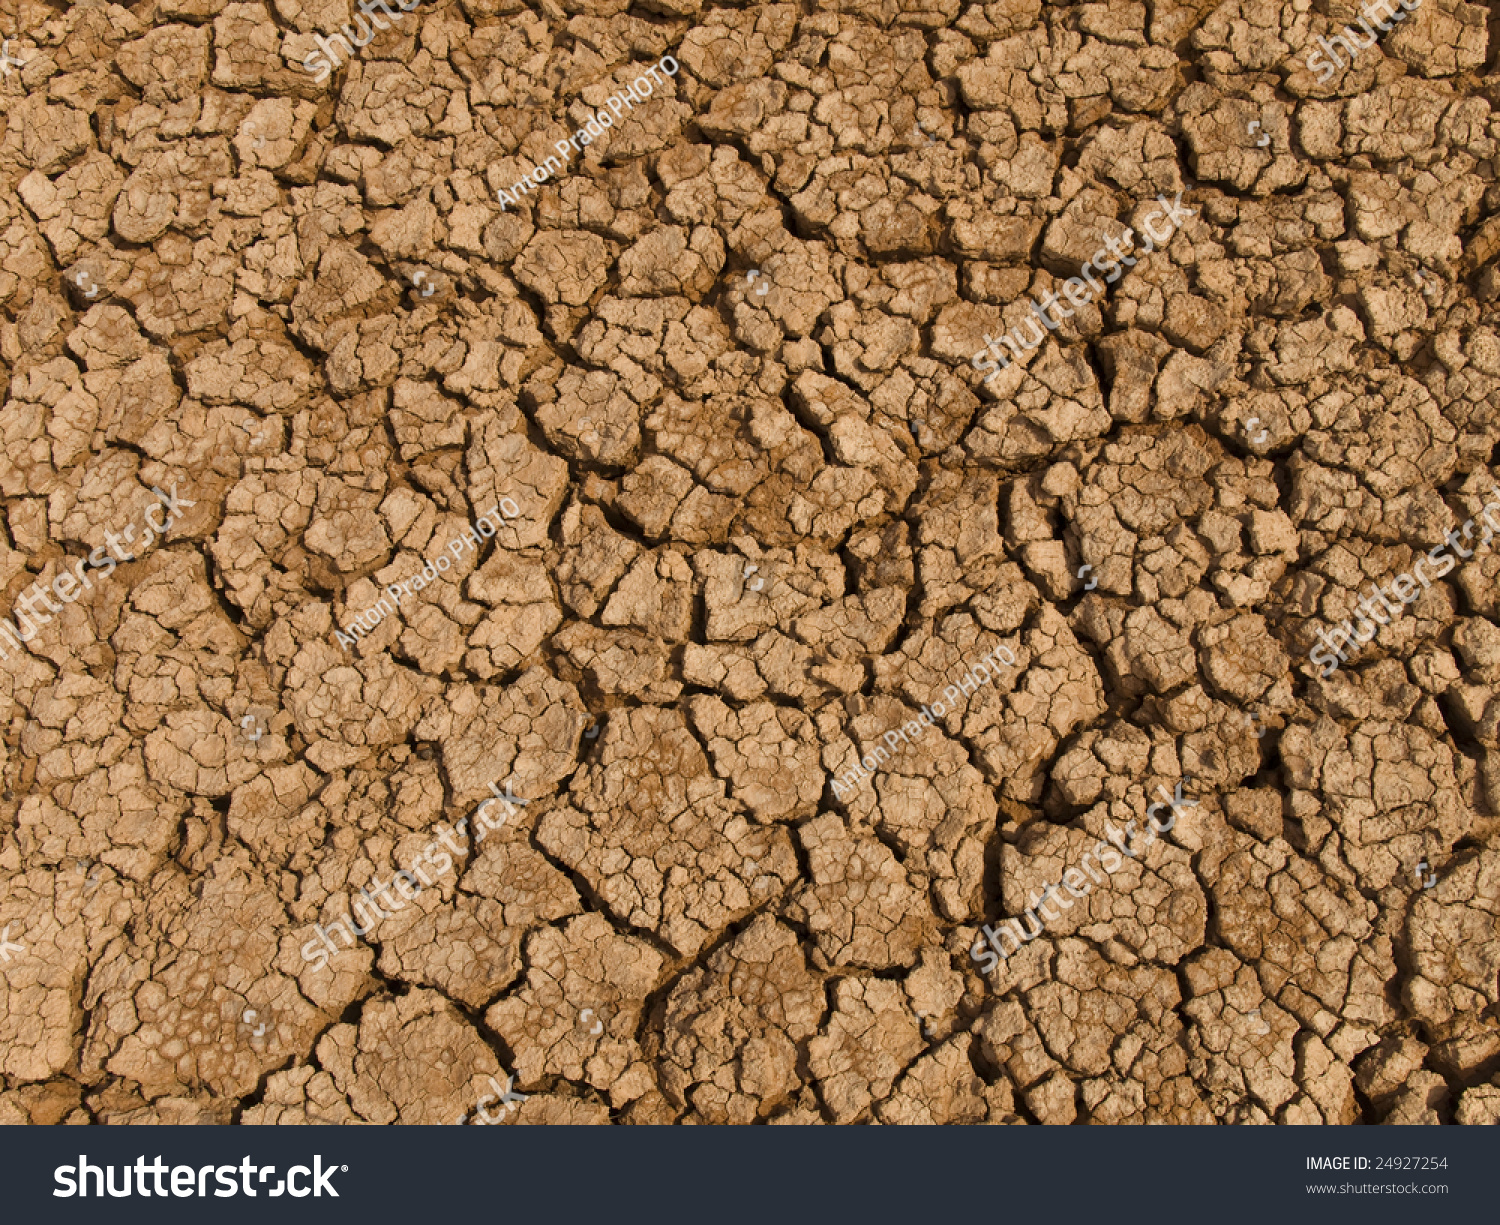 A baked earth soil after a long drought stock photo for Earth or soil